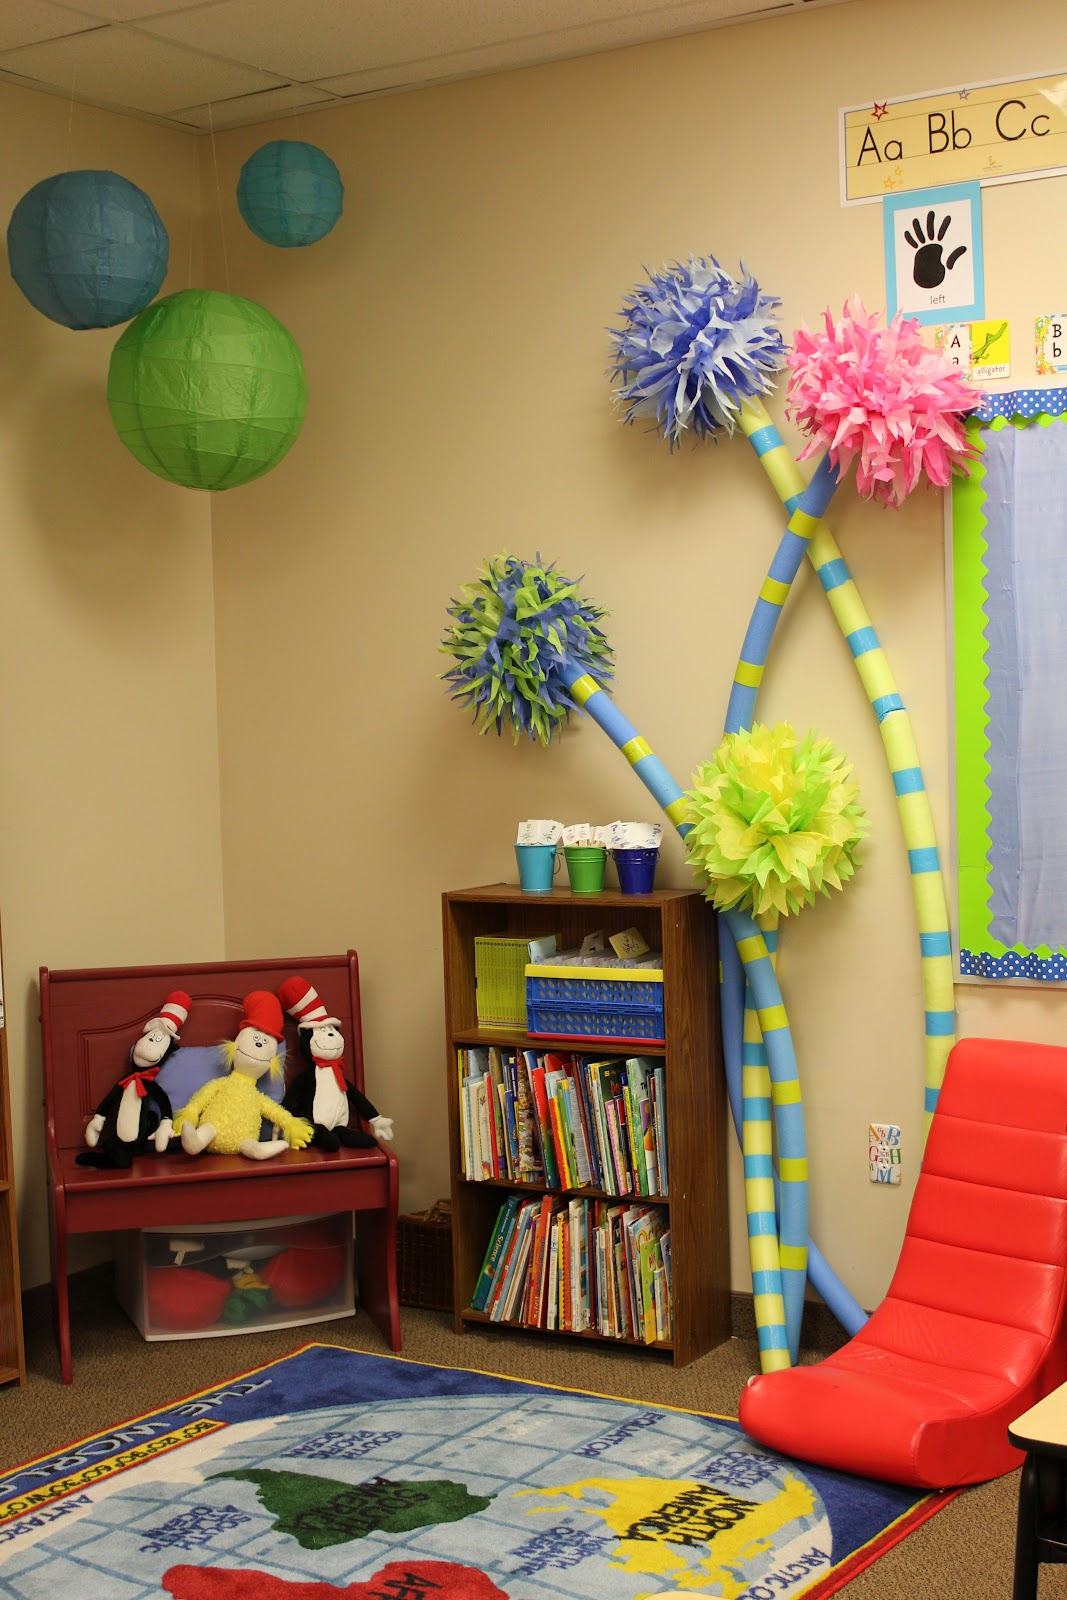 Dr Seuss Classroom Theme Photos Finally on Pinterest Dr Seuss Door